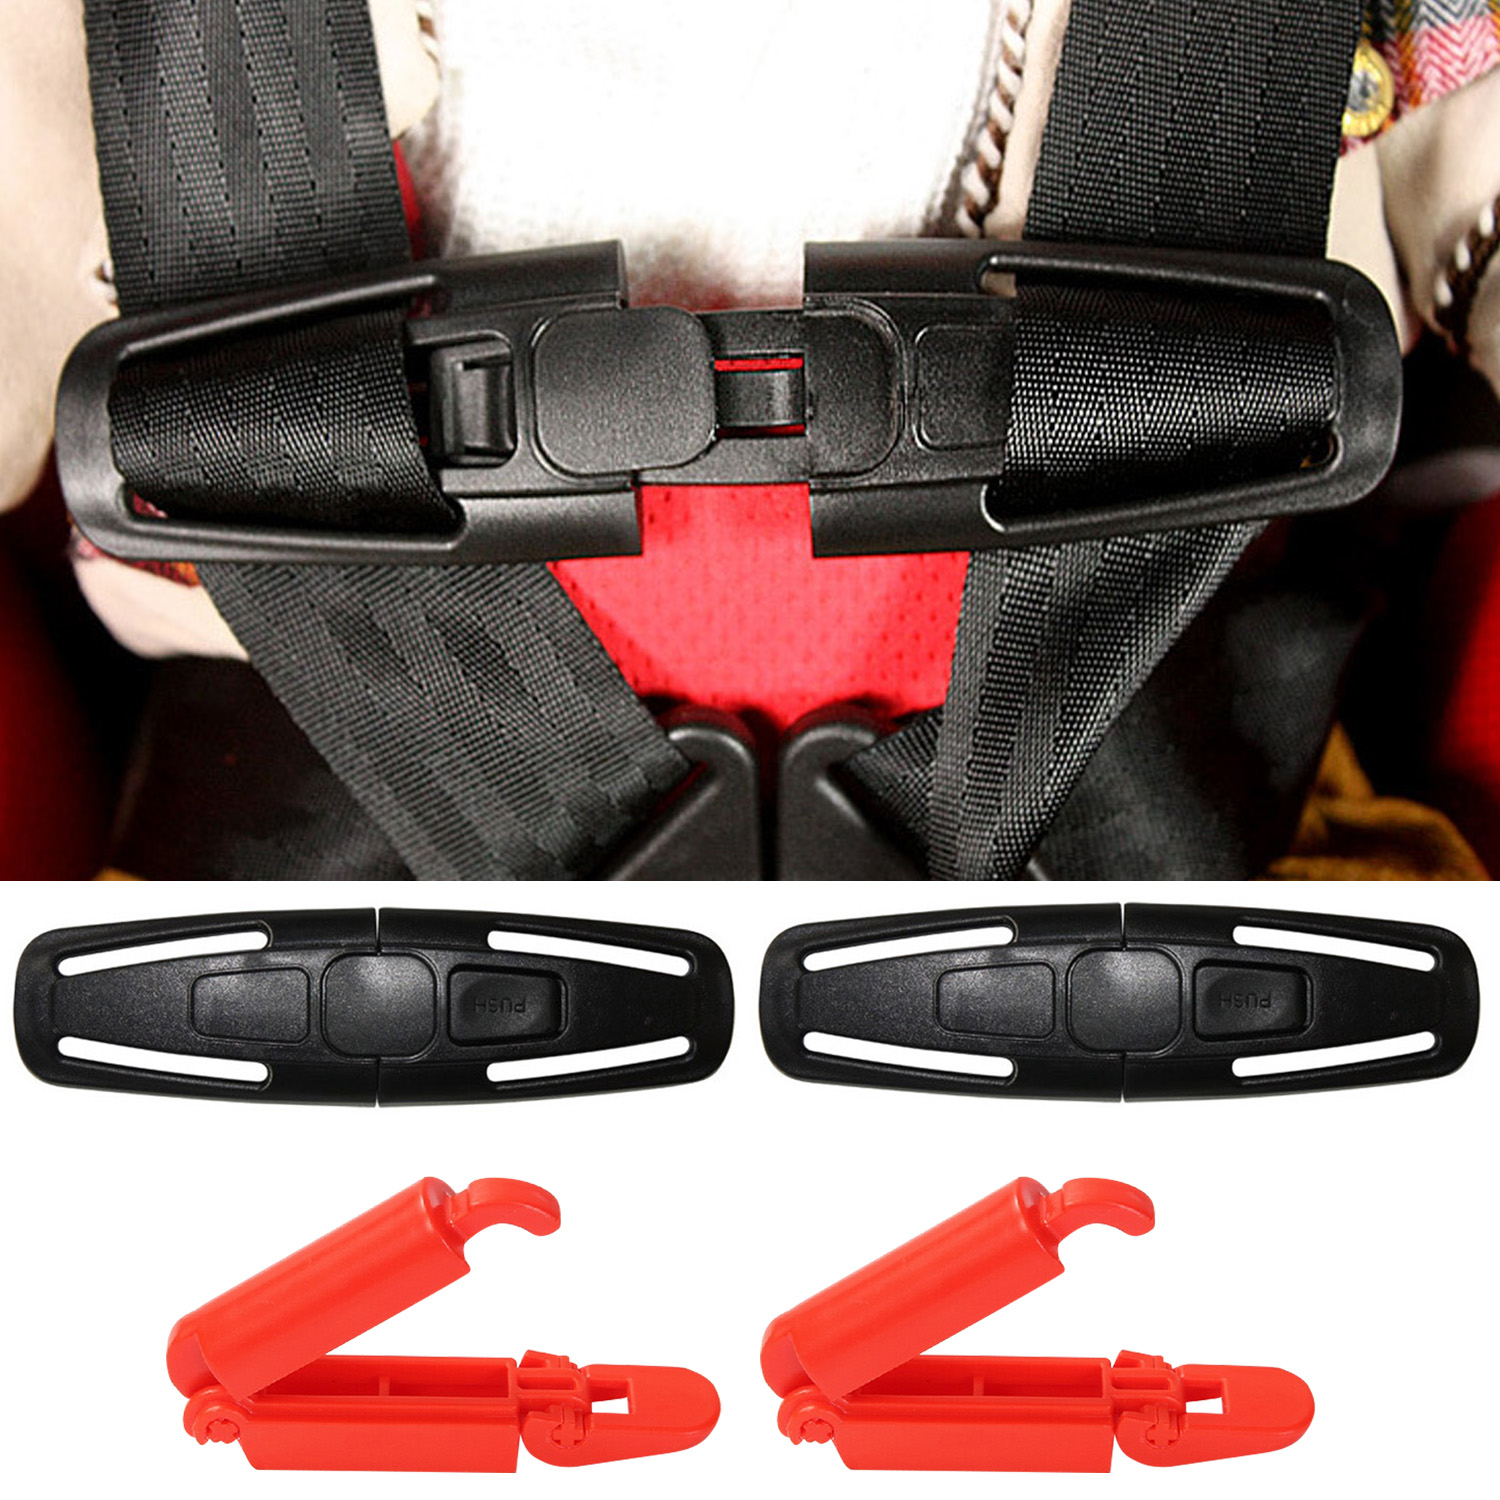 2PCS Chest Harness Clips With 2PCS Car Seat Belt Strap Clip Buckles Baby Kids Car Safety Seat Accessories